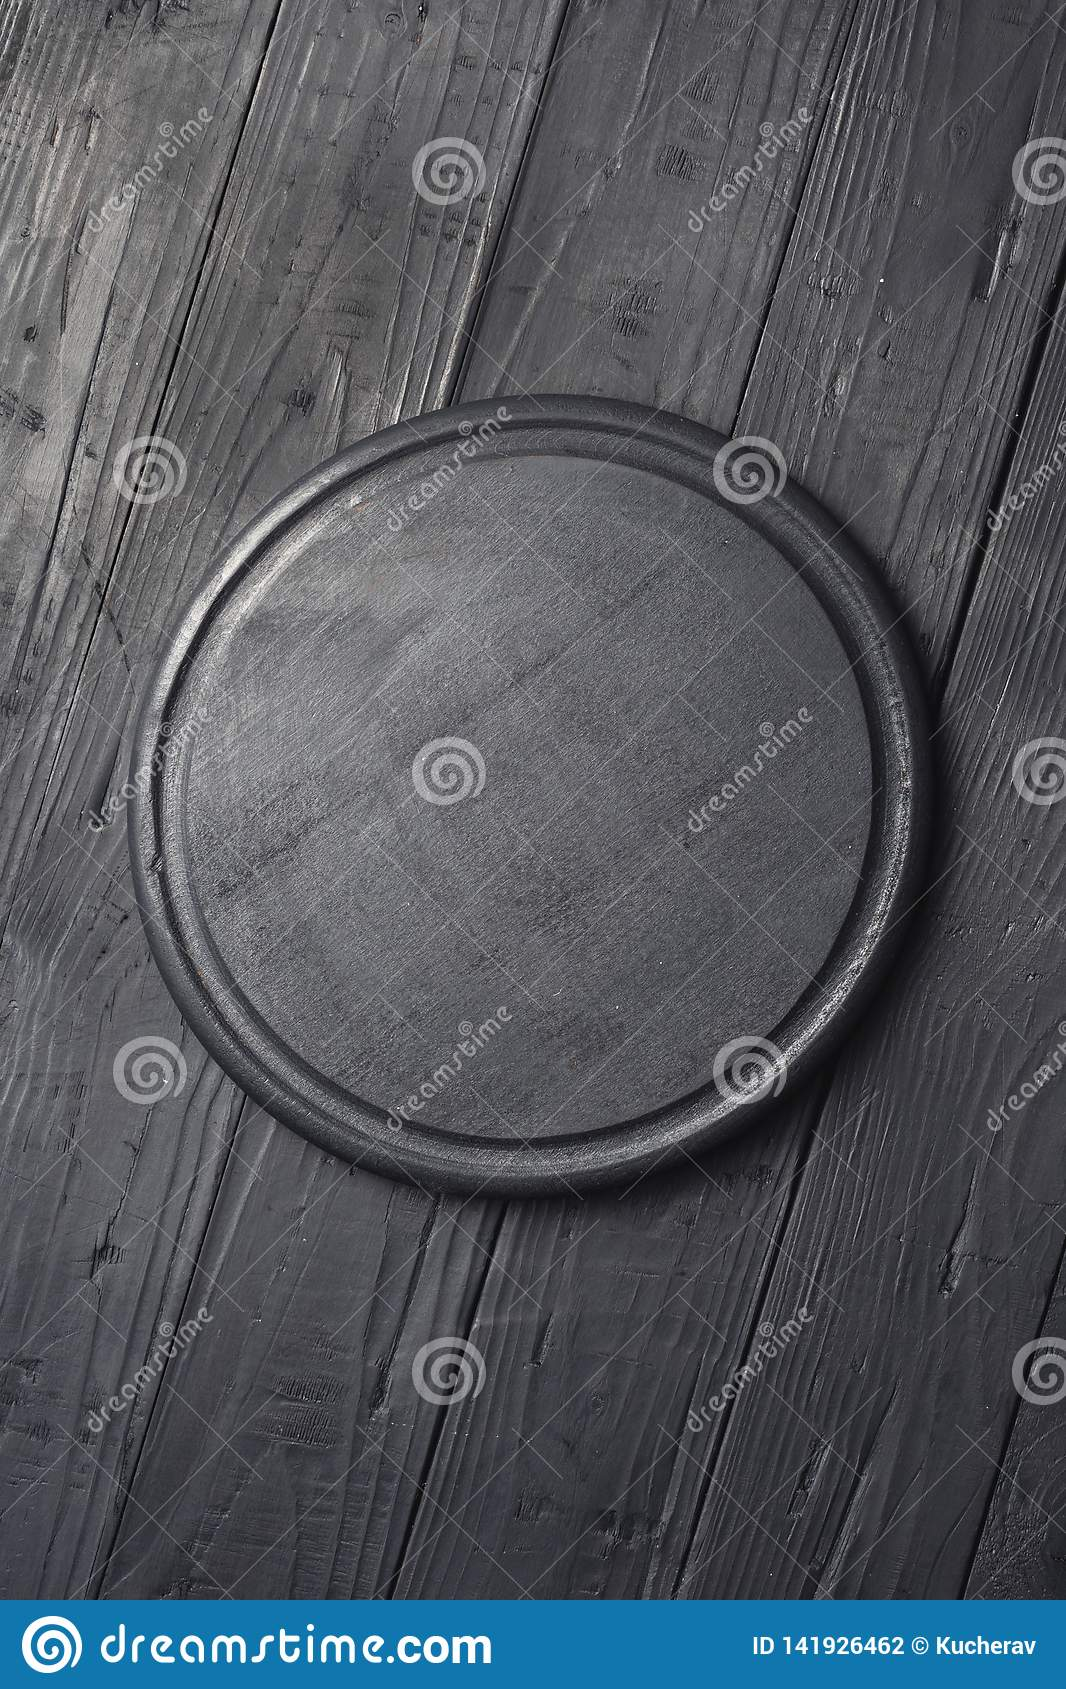 Black Round Cutting Board Dark Background Top View Stock Photo Image Of Copy Board 141926462